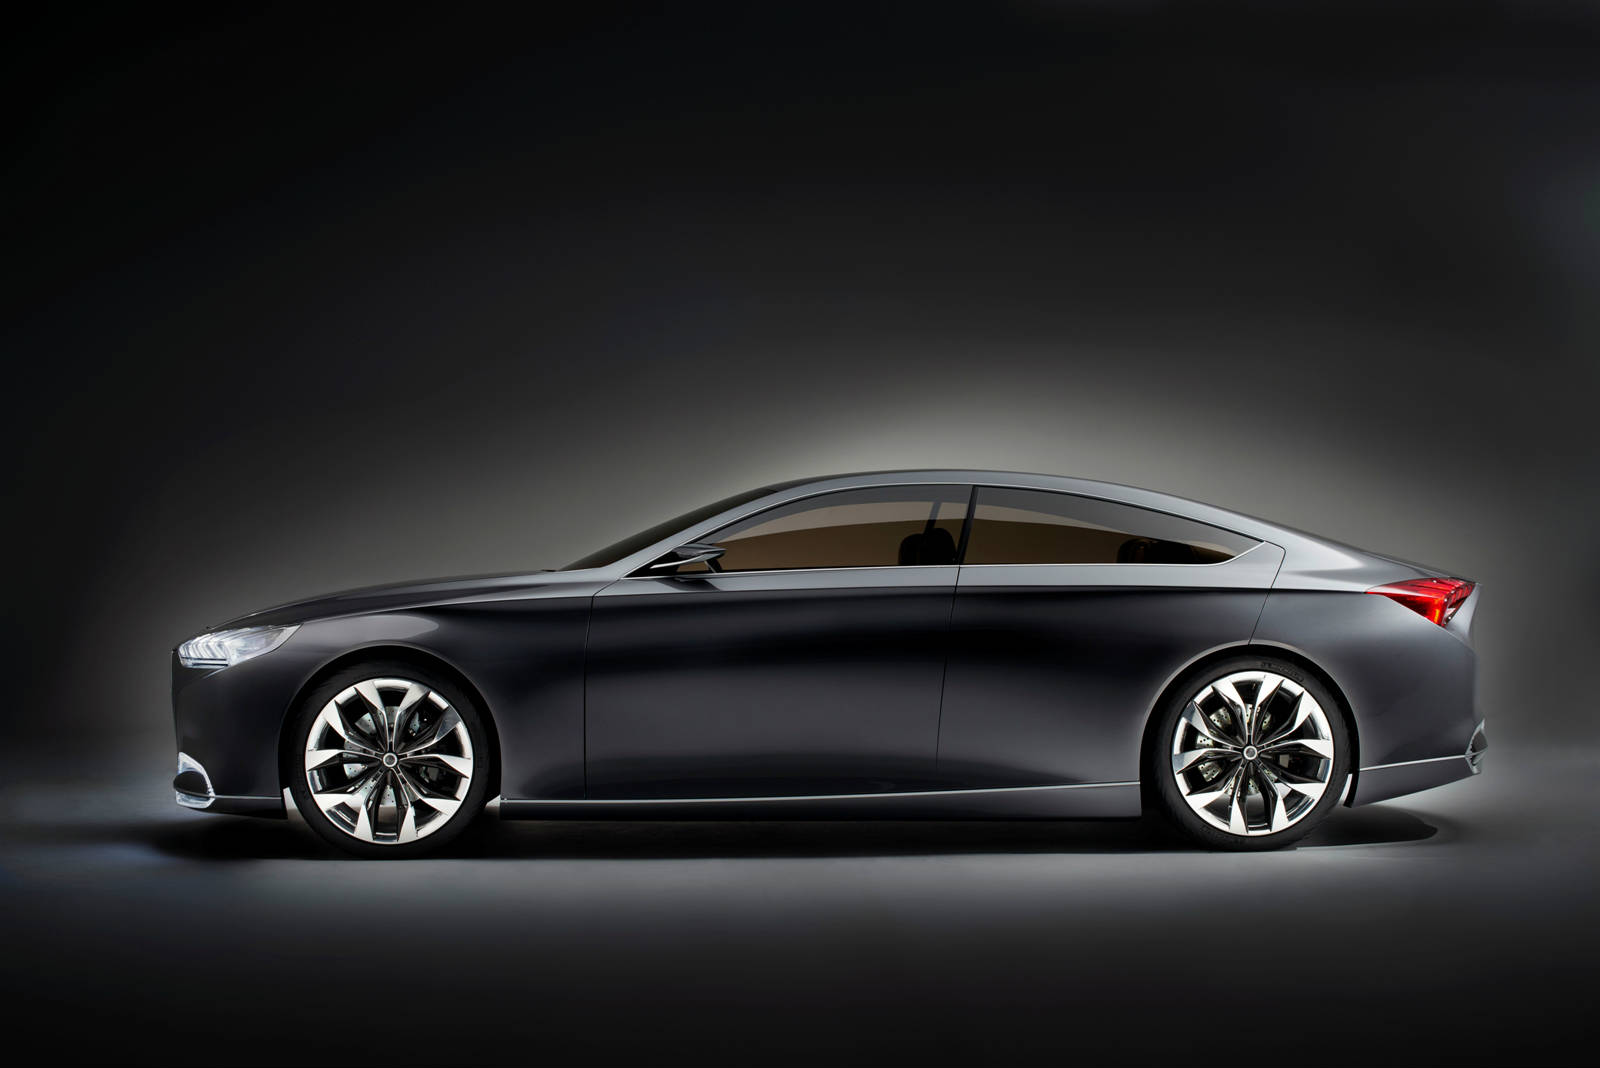 The Concept Hyundai Hcd 14 Is The New 2014 Genesis Sedan